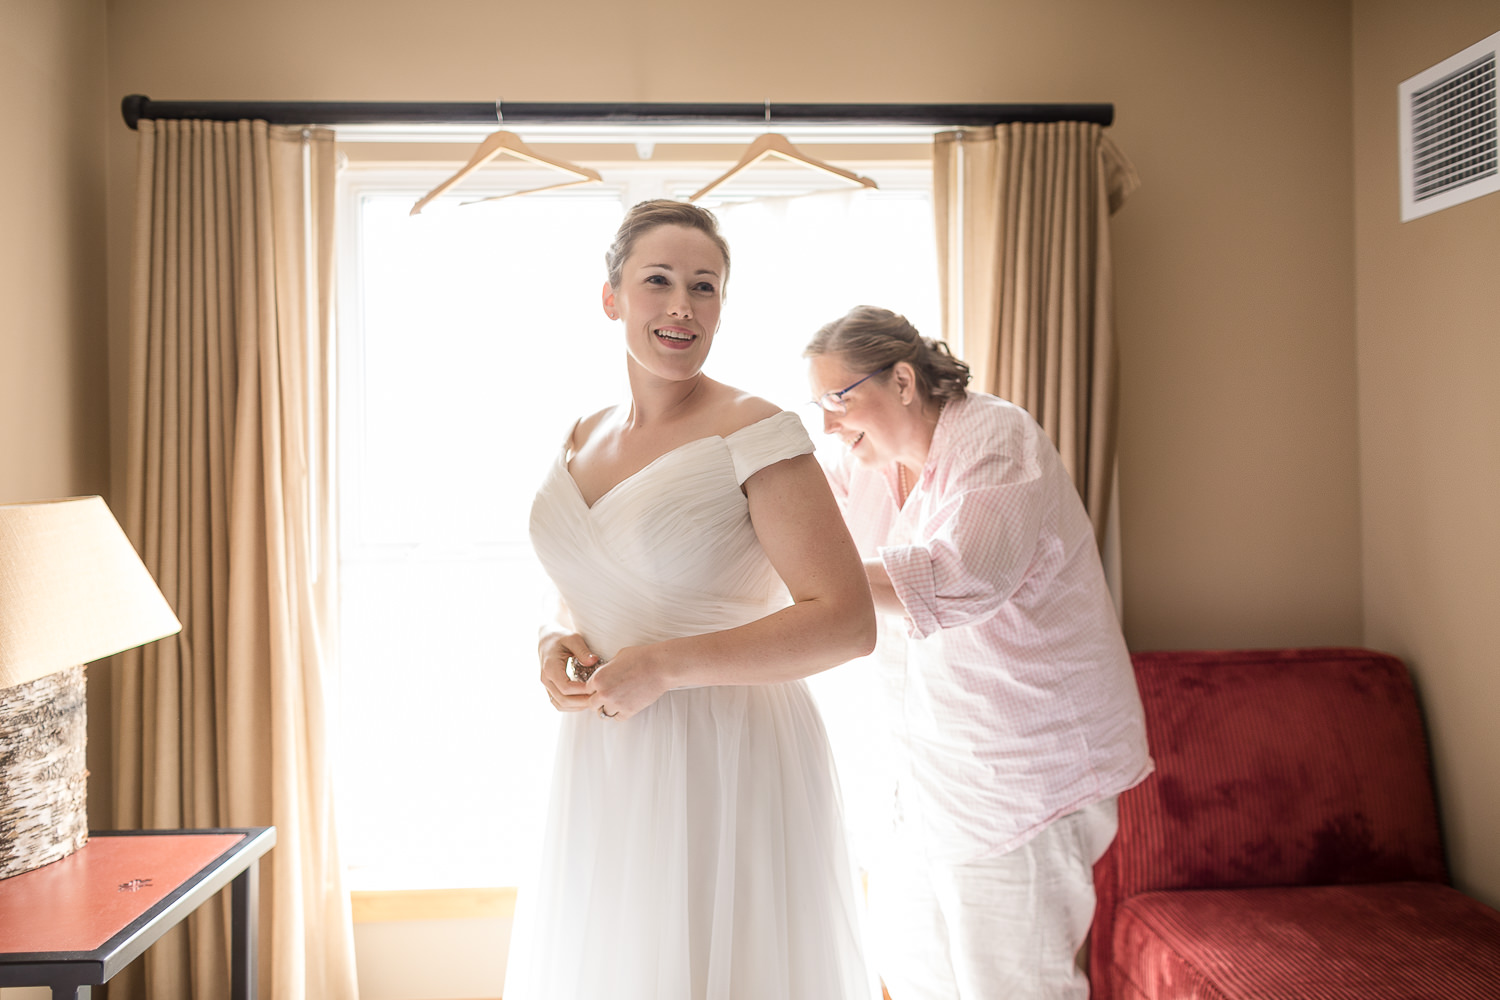 a bride's Mom helps her with her wedding gown